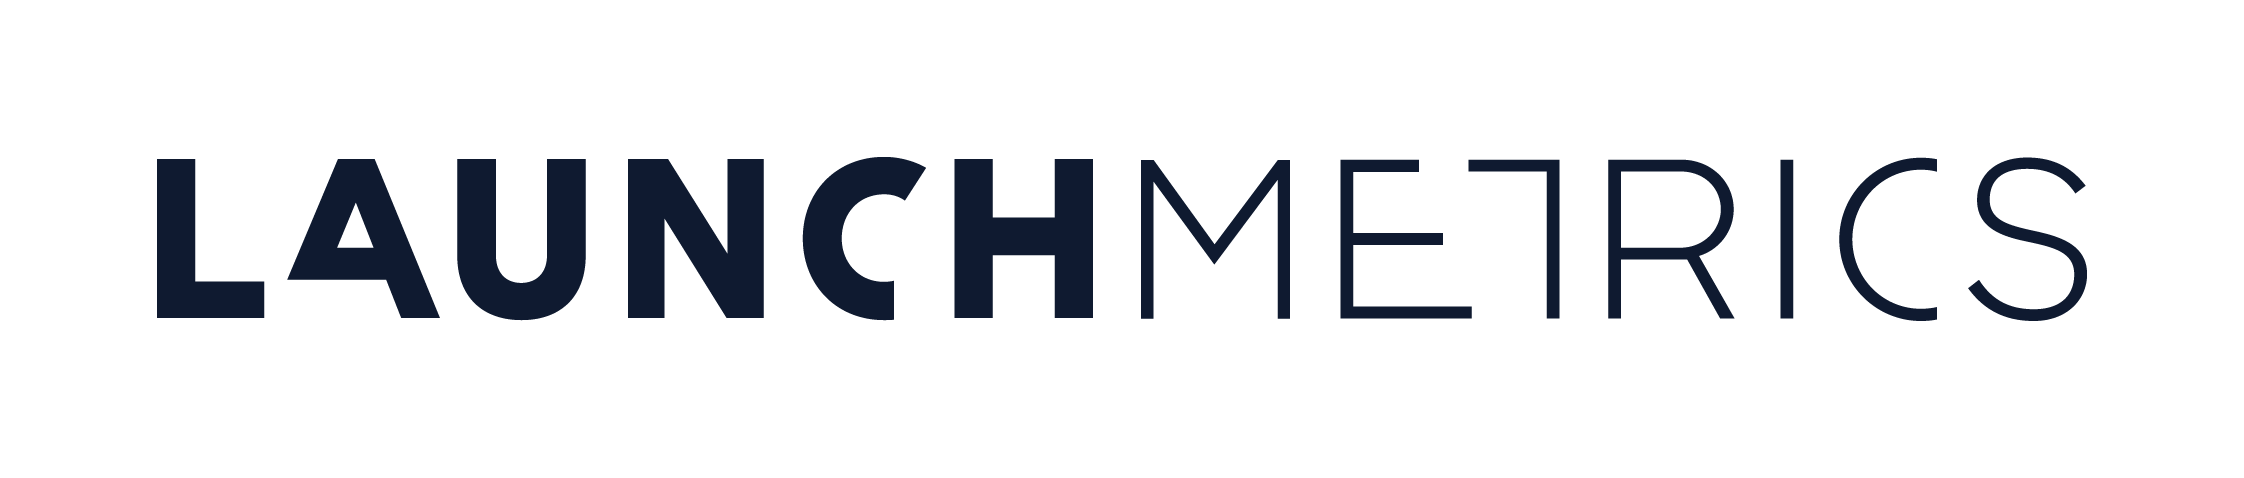 Launchmetrics logo